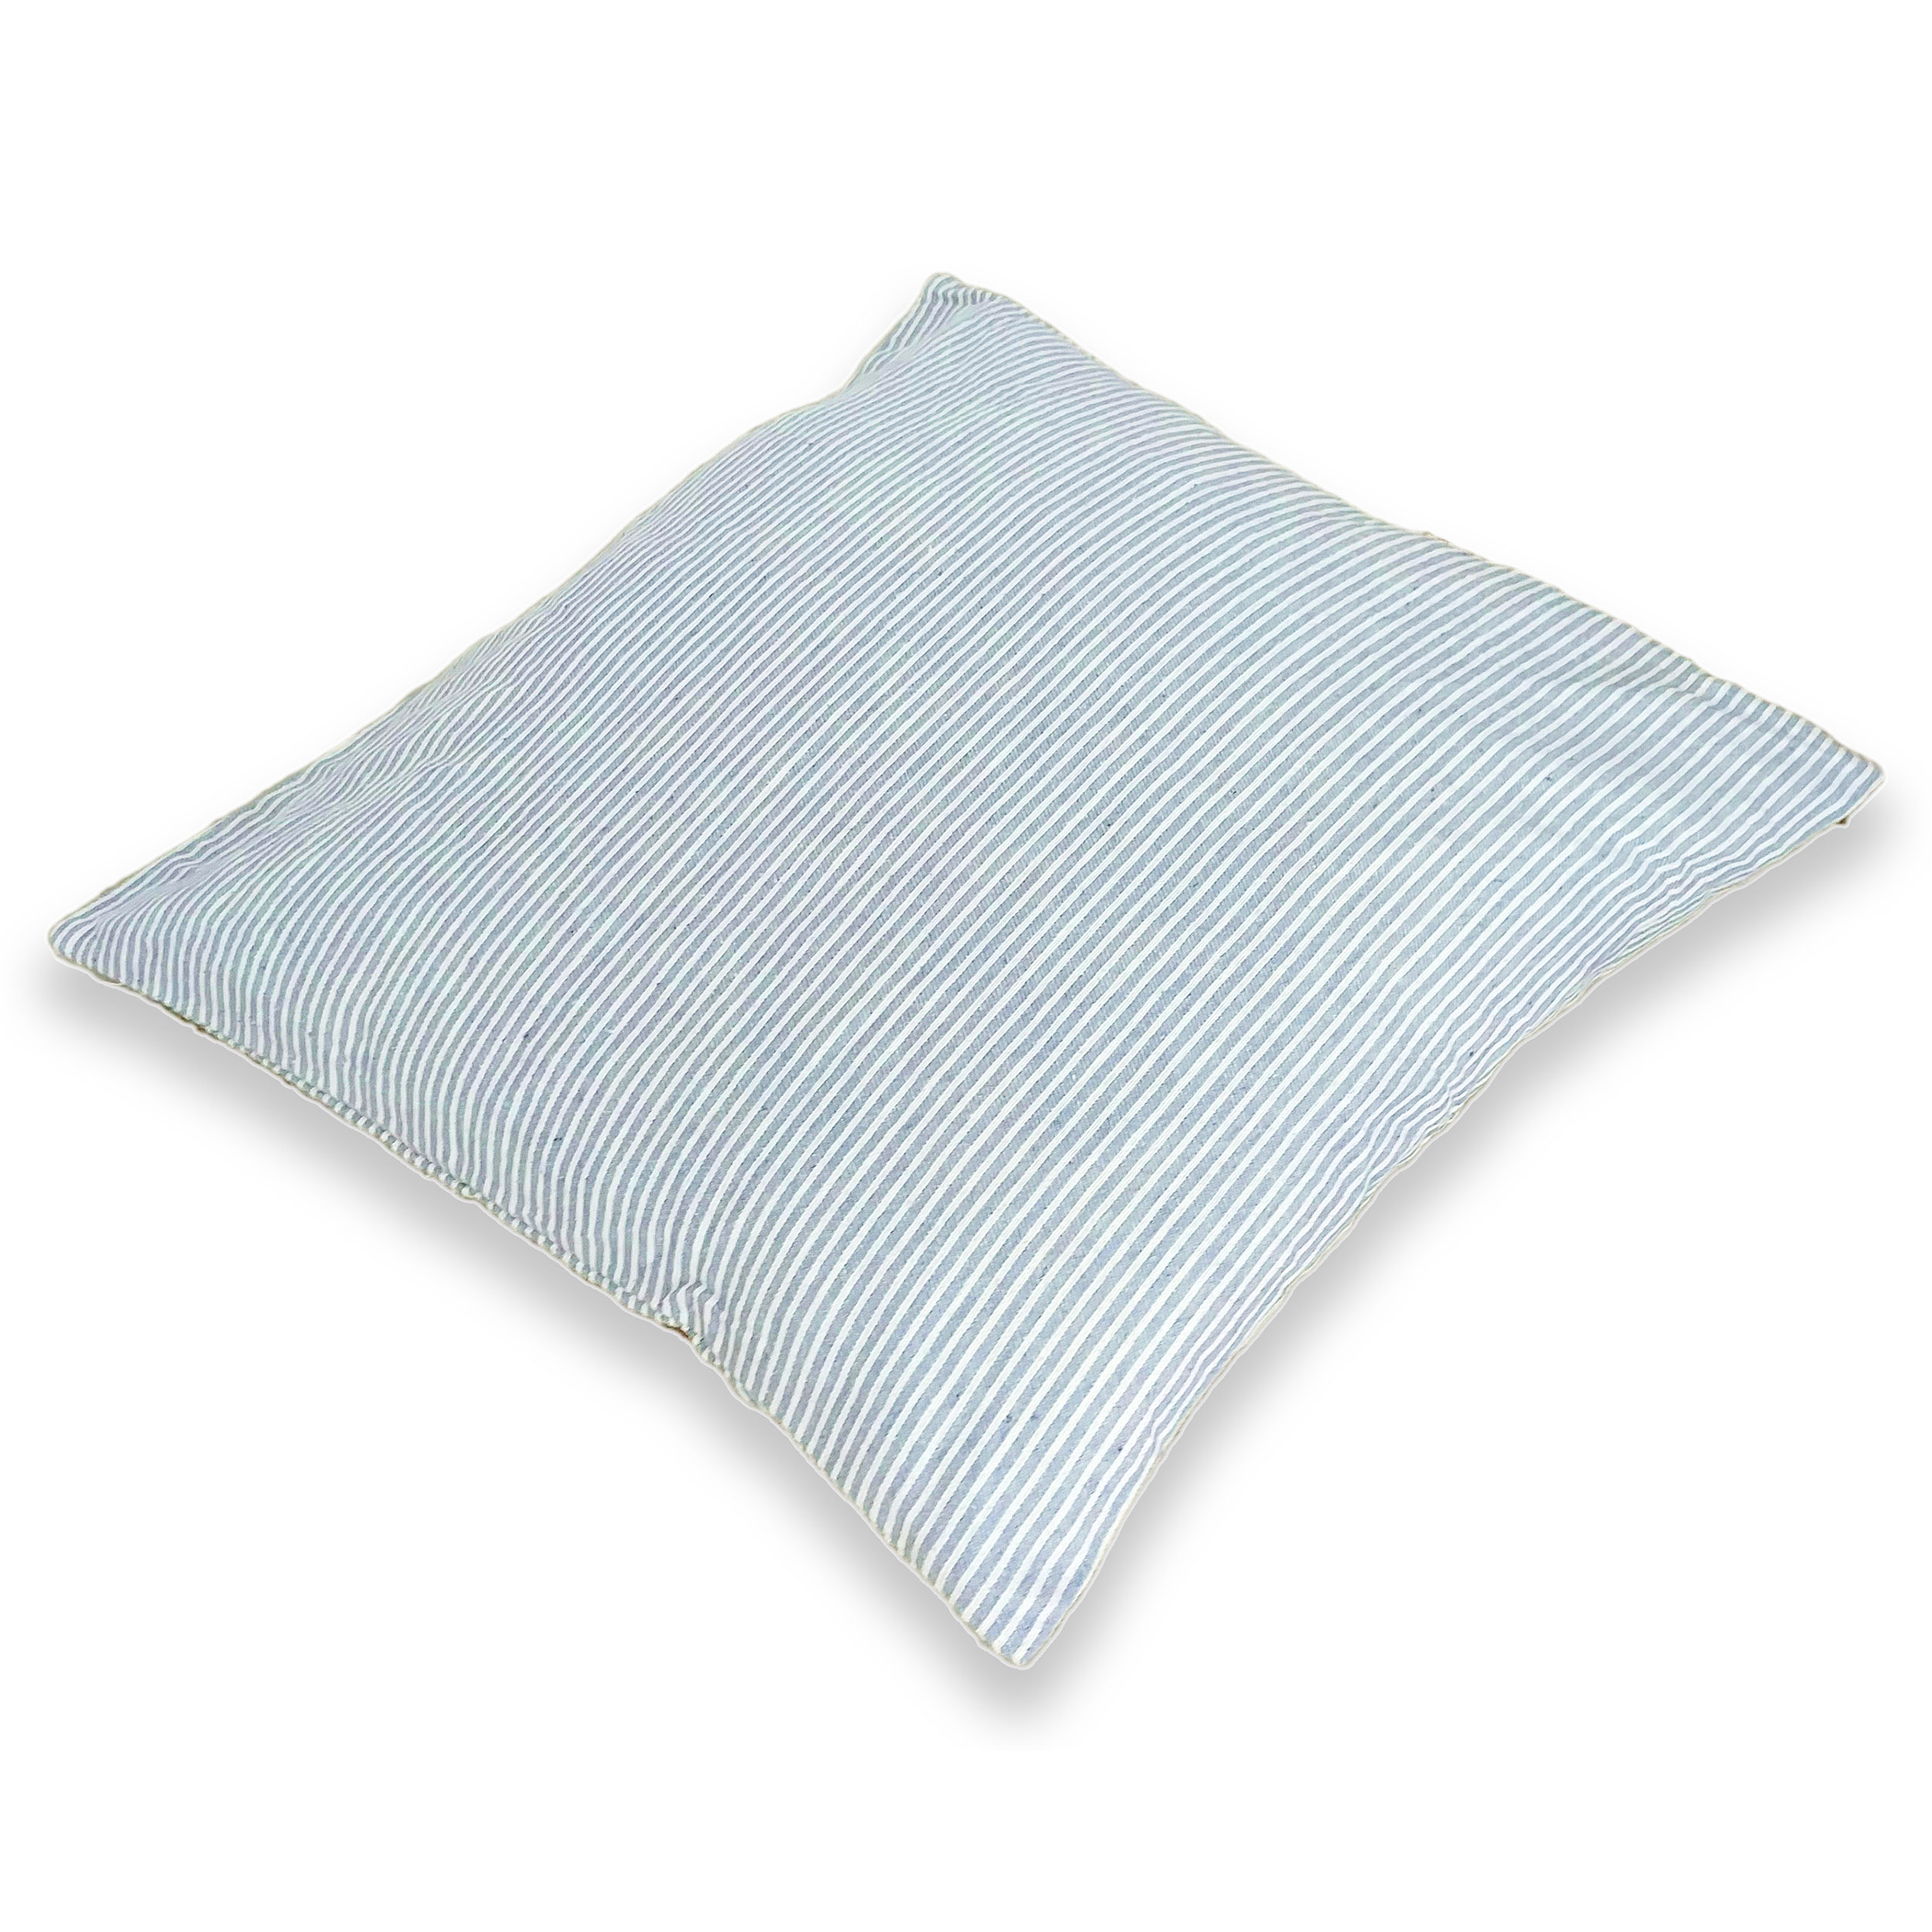 Striped Denim Hammock Cushion